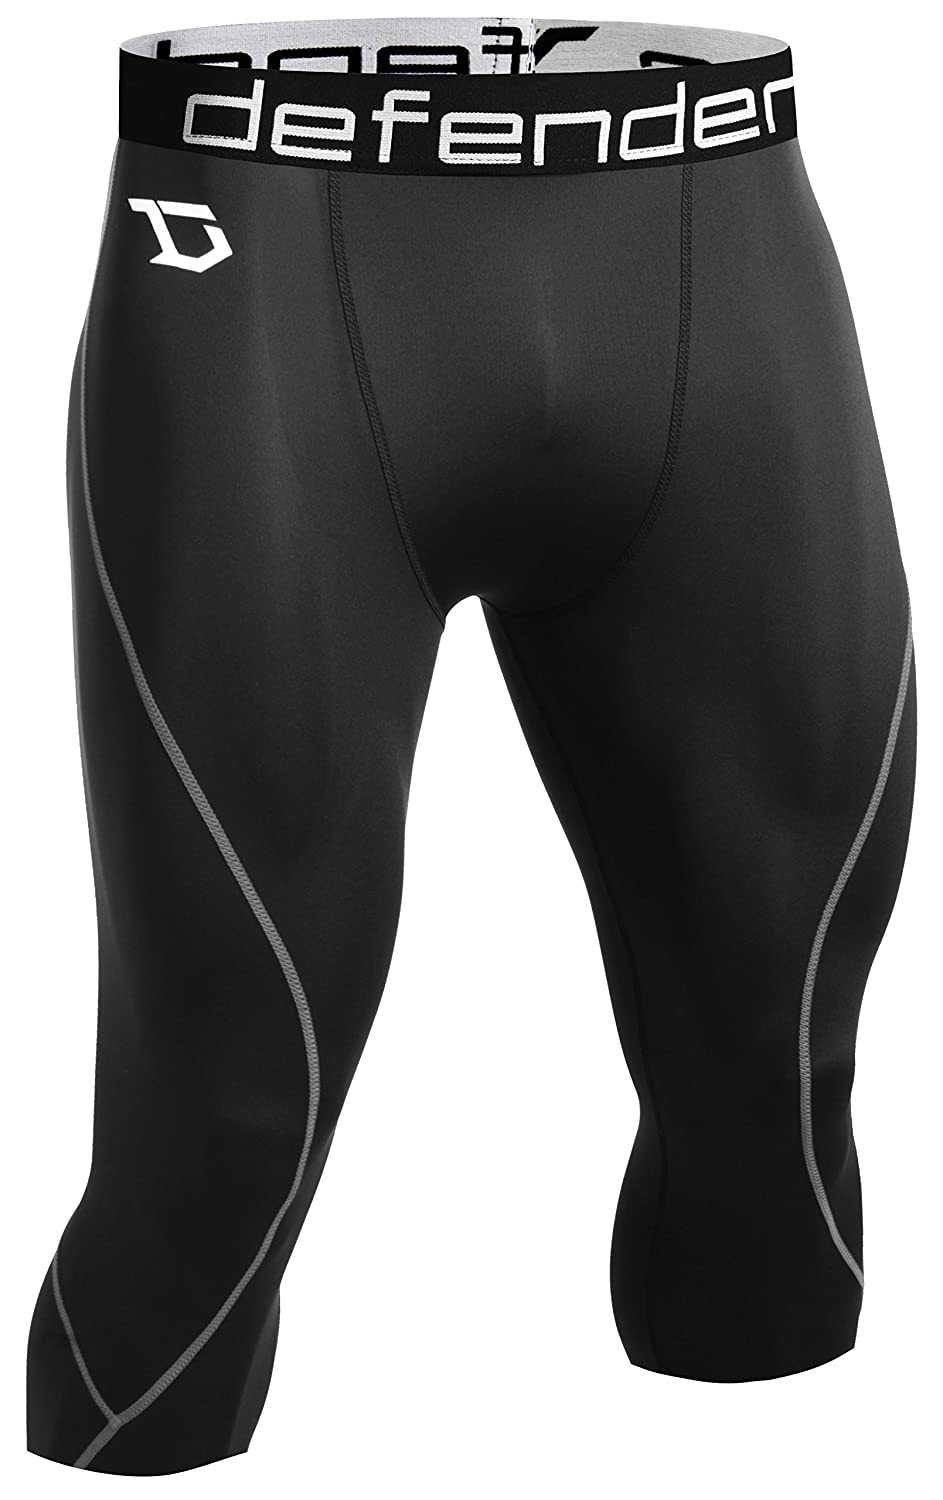 Defender New Men's Compression Baselayer Capri